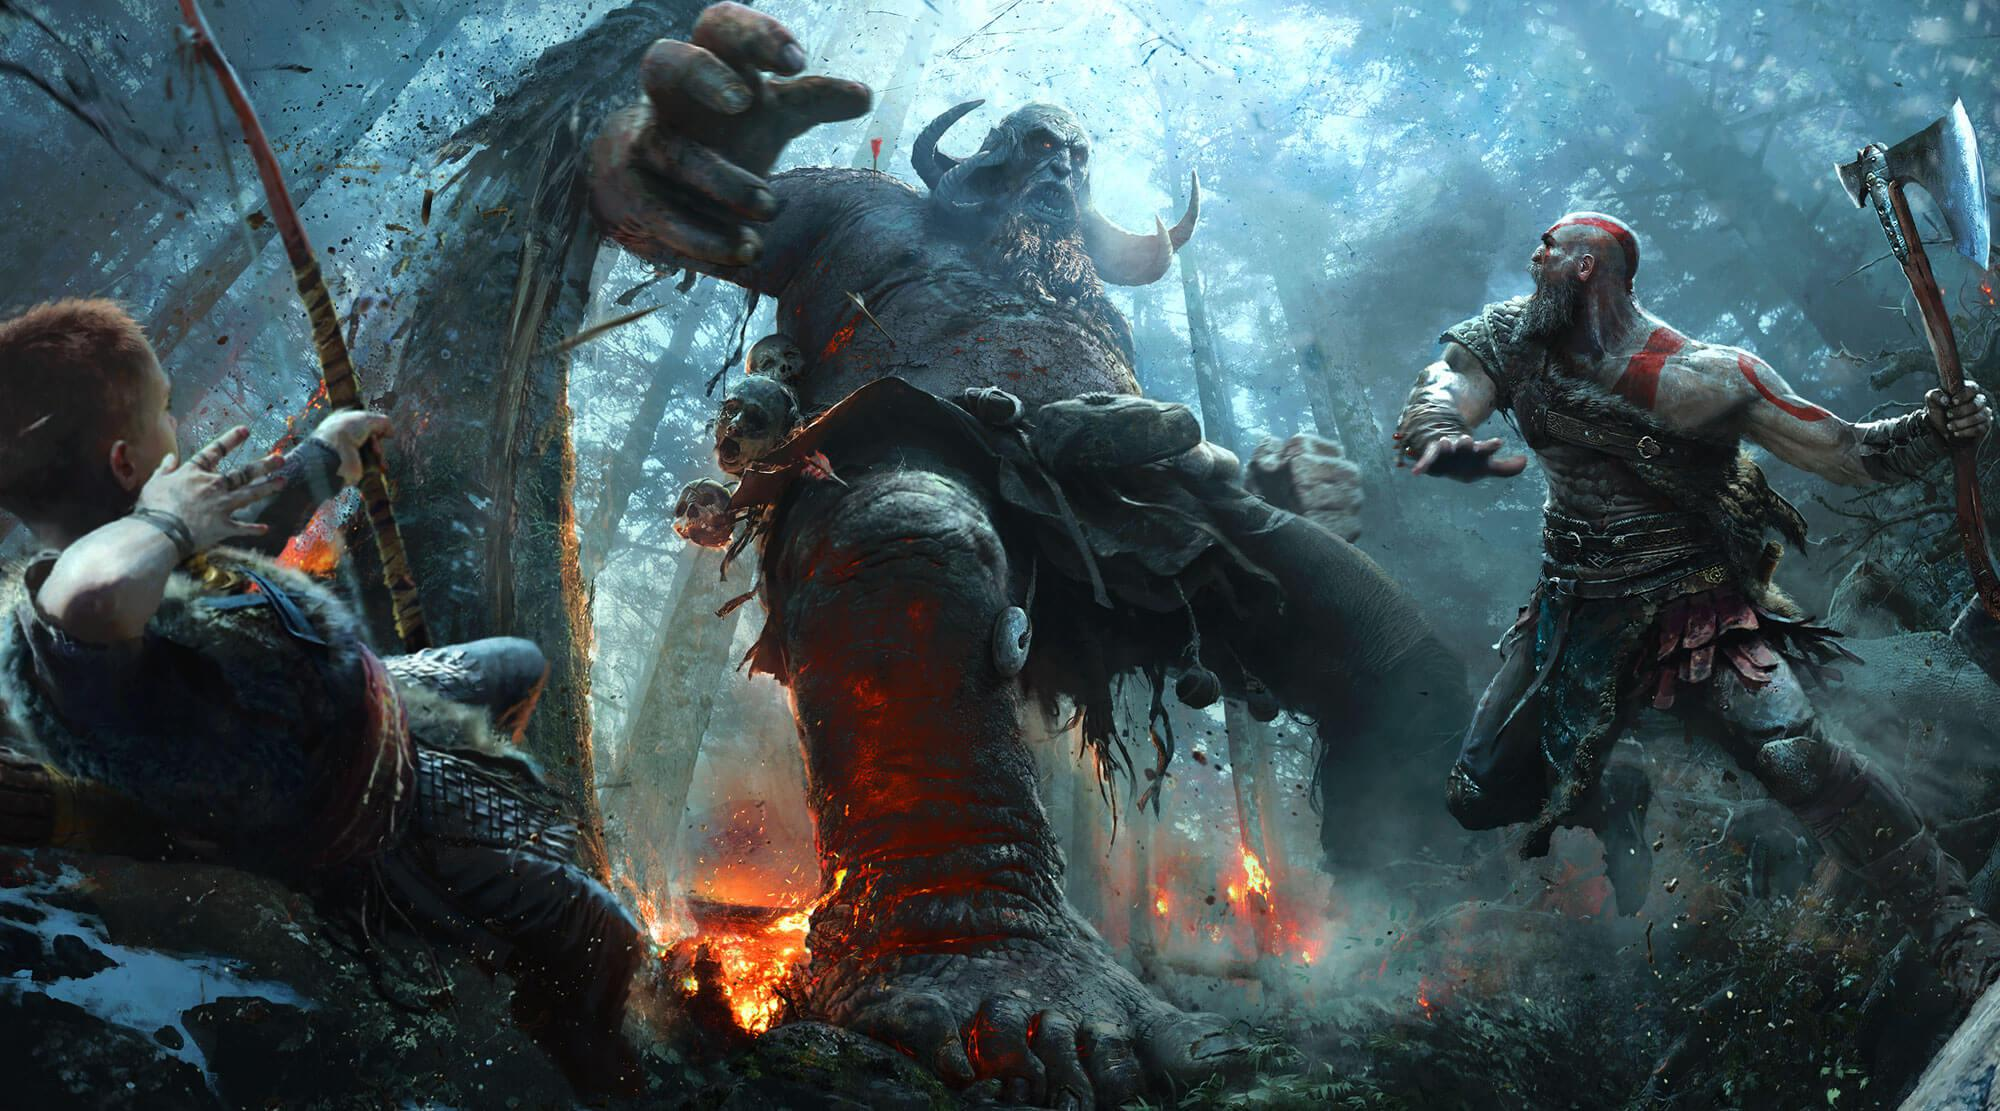 God of War is fast becoming one of the most-wanted games – let's hope it's not delayed again